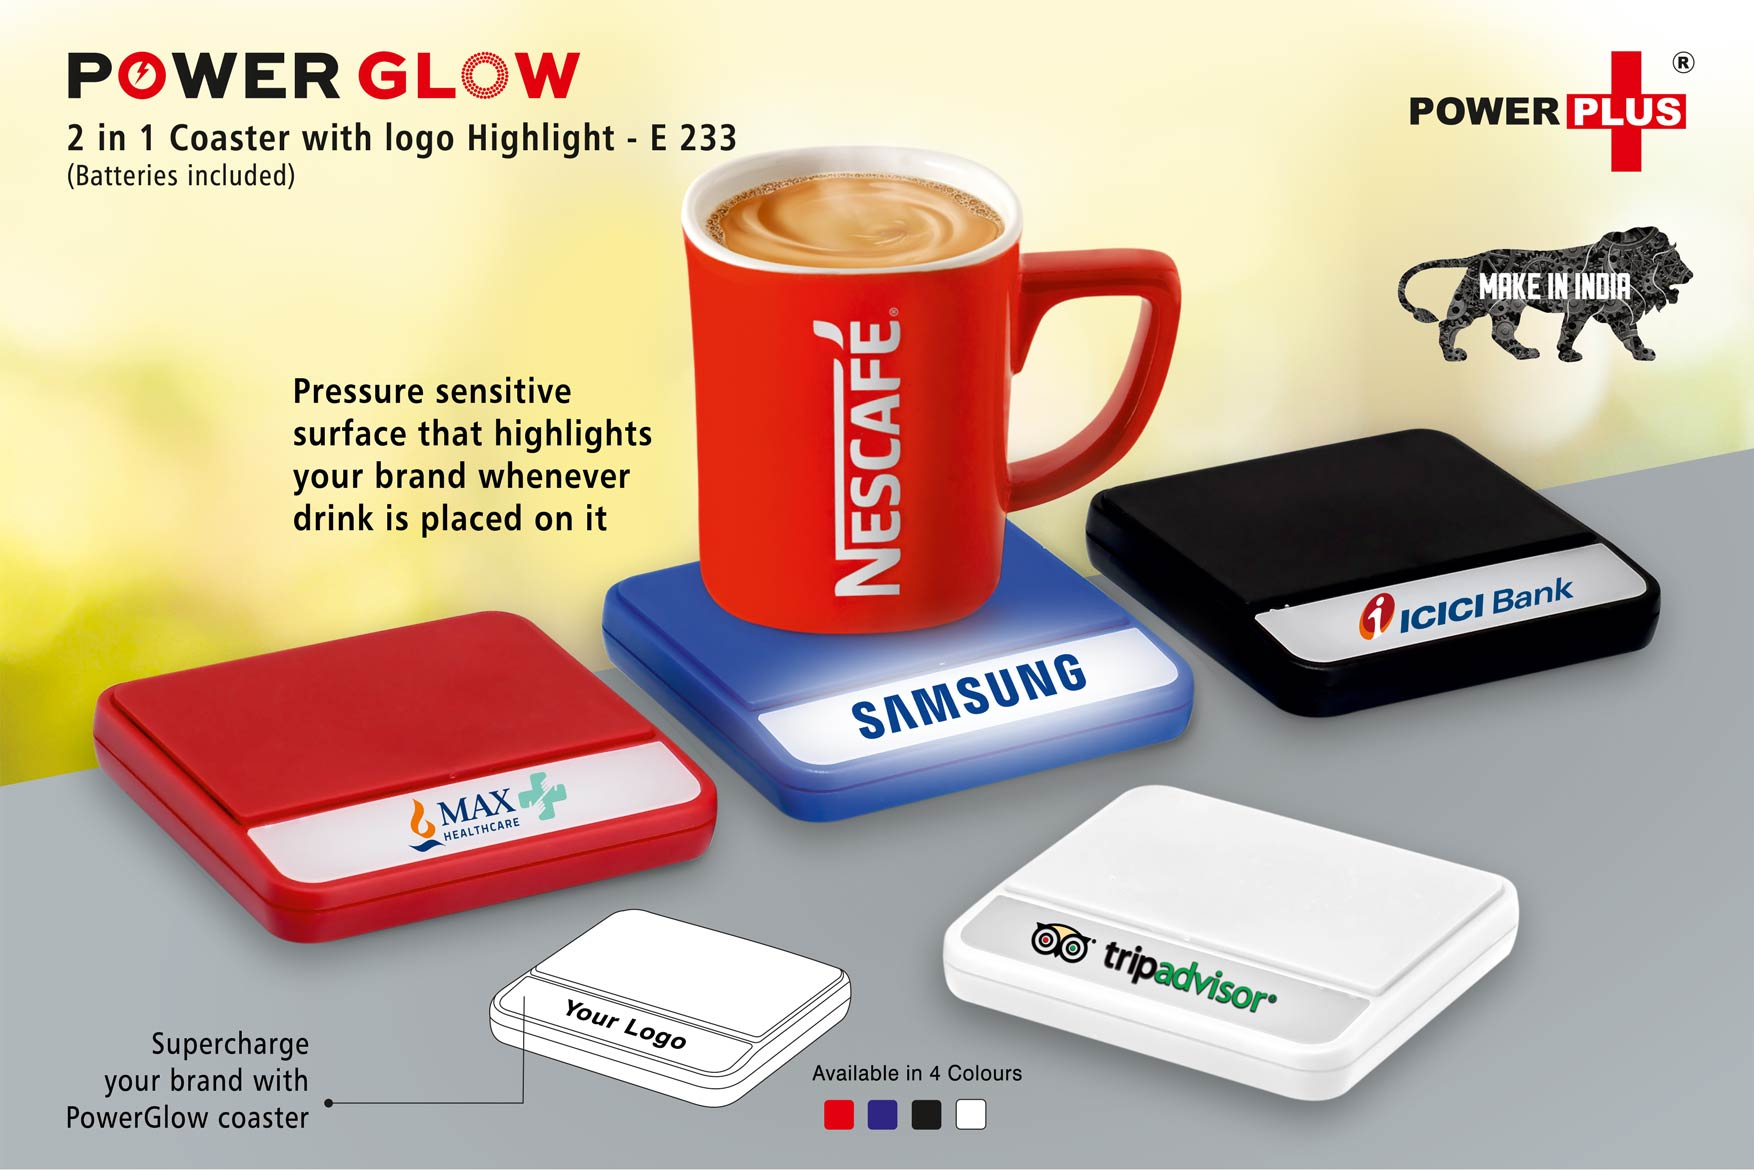 E233 - PowerGlow coaster with logo highlight (batteries included)